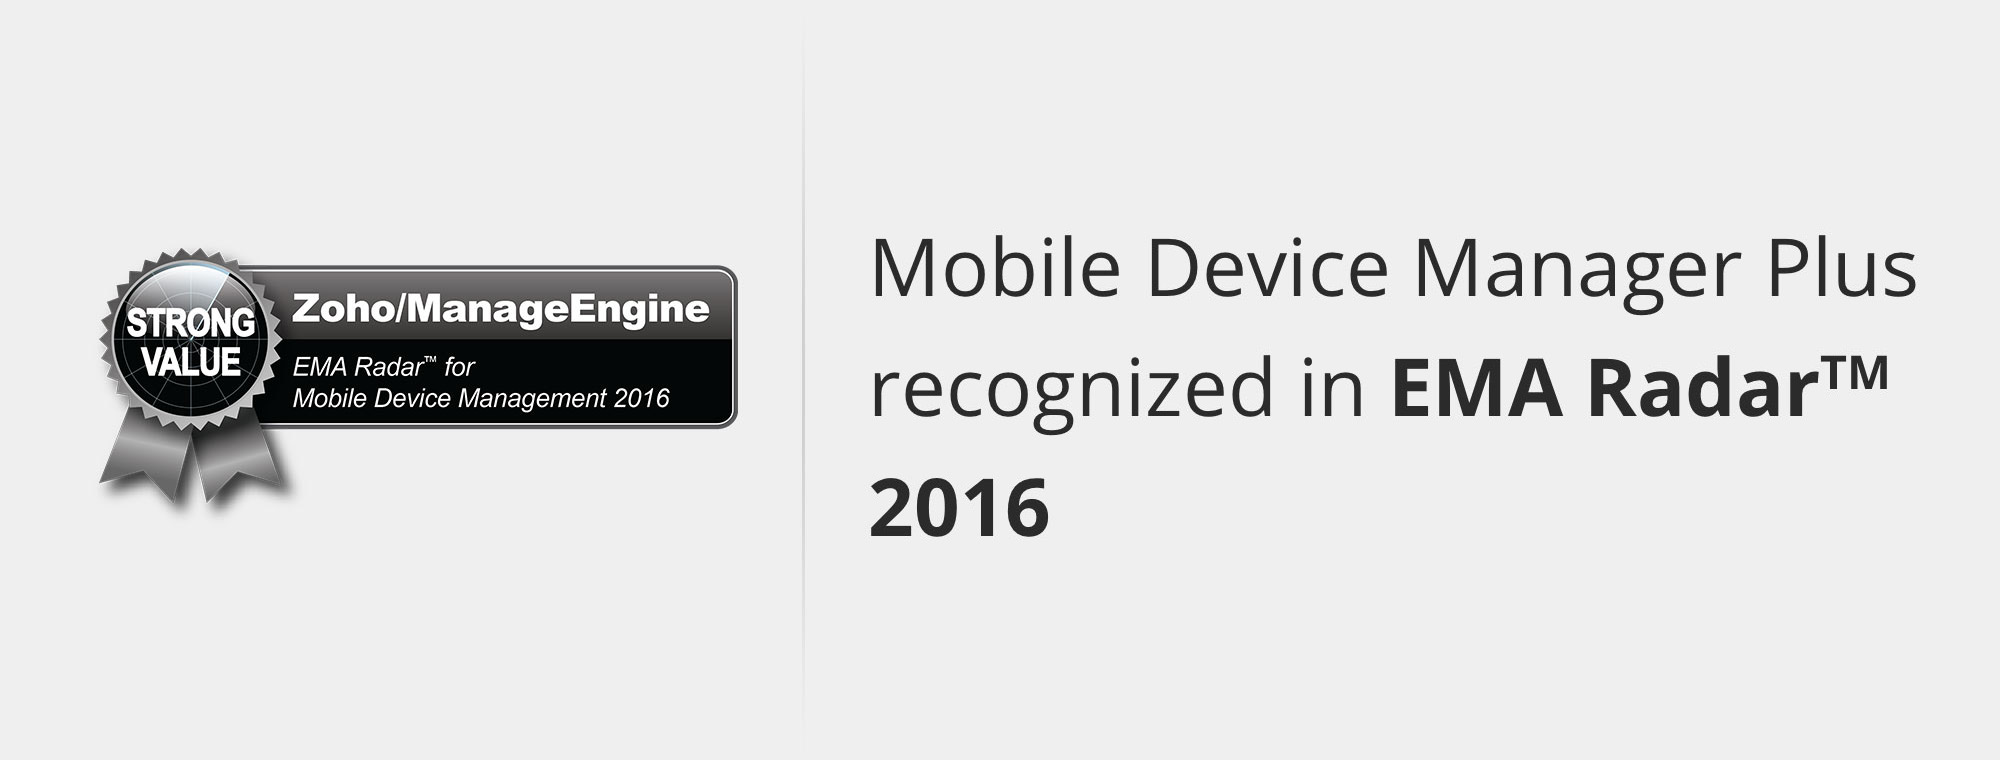 Mobile Device Manager Plus recognized in EMA Radar 2016